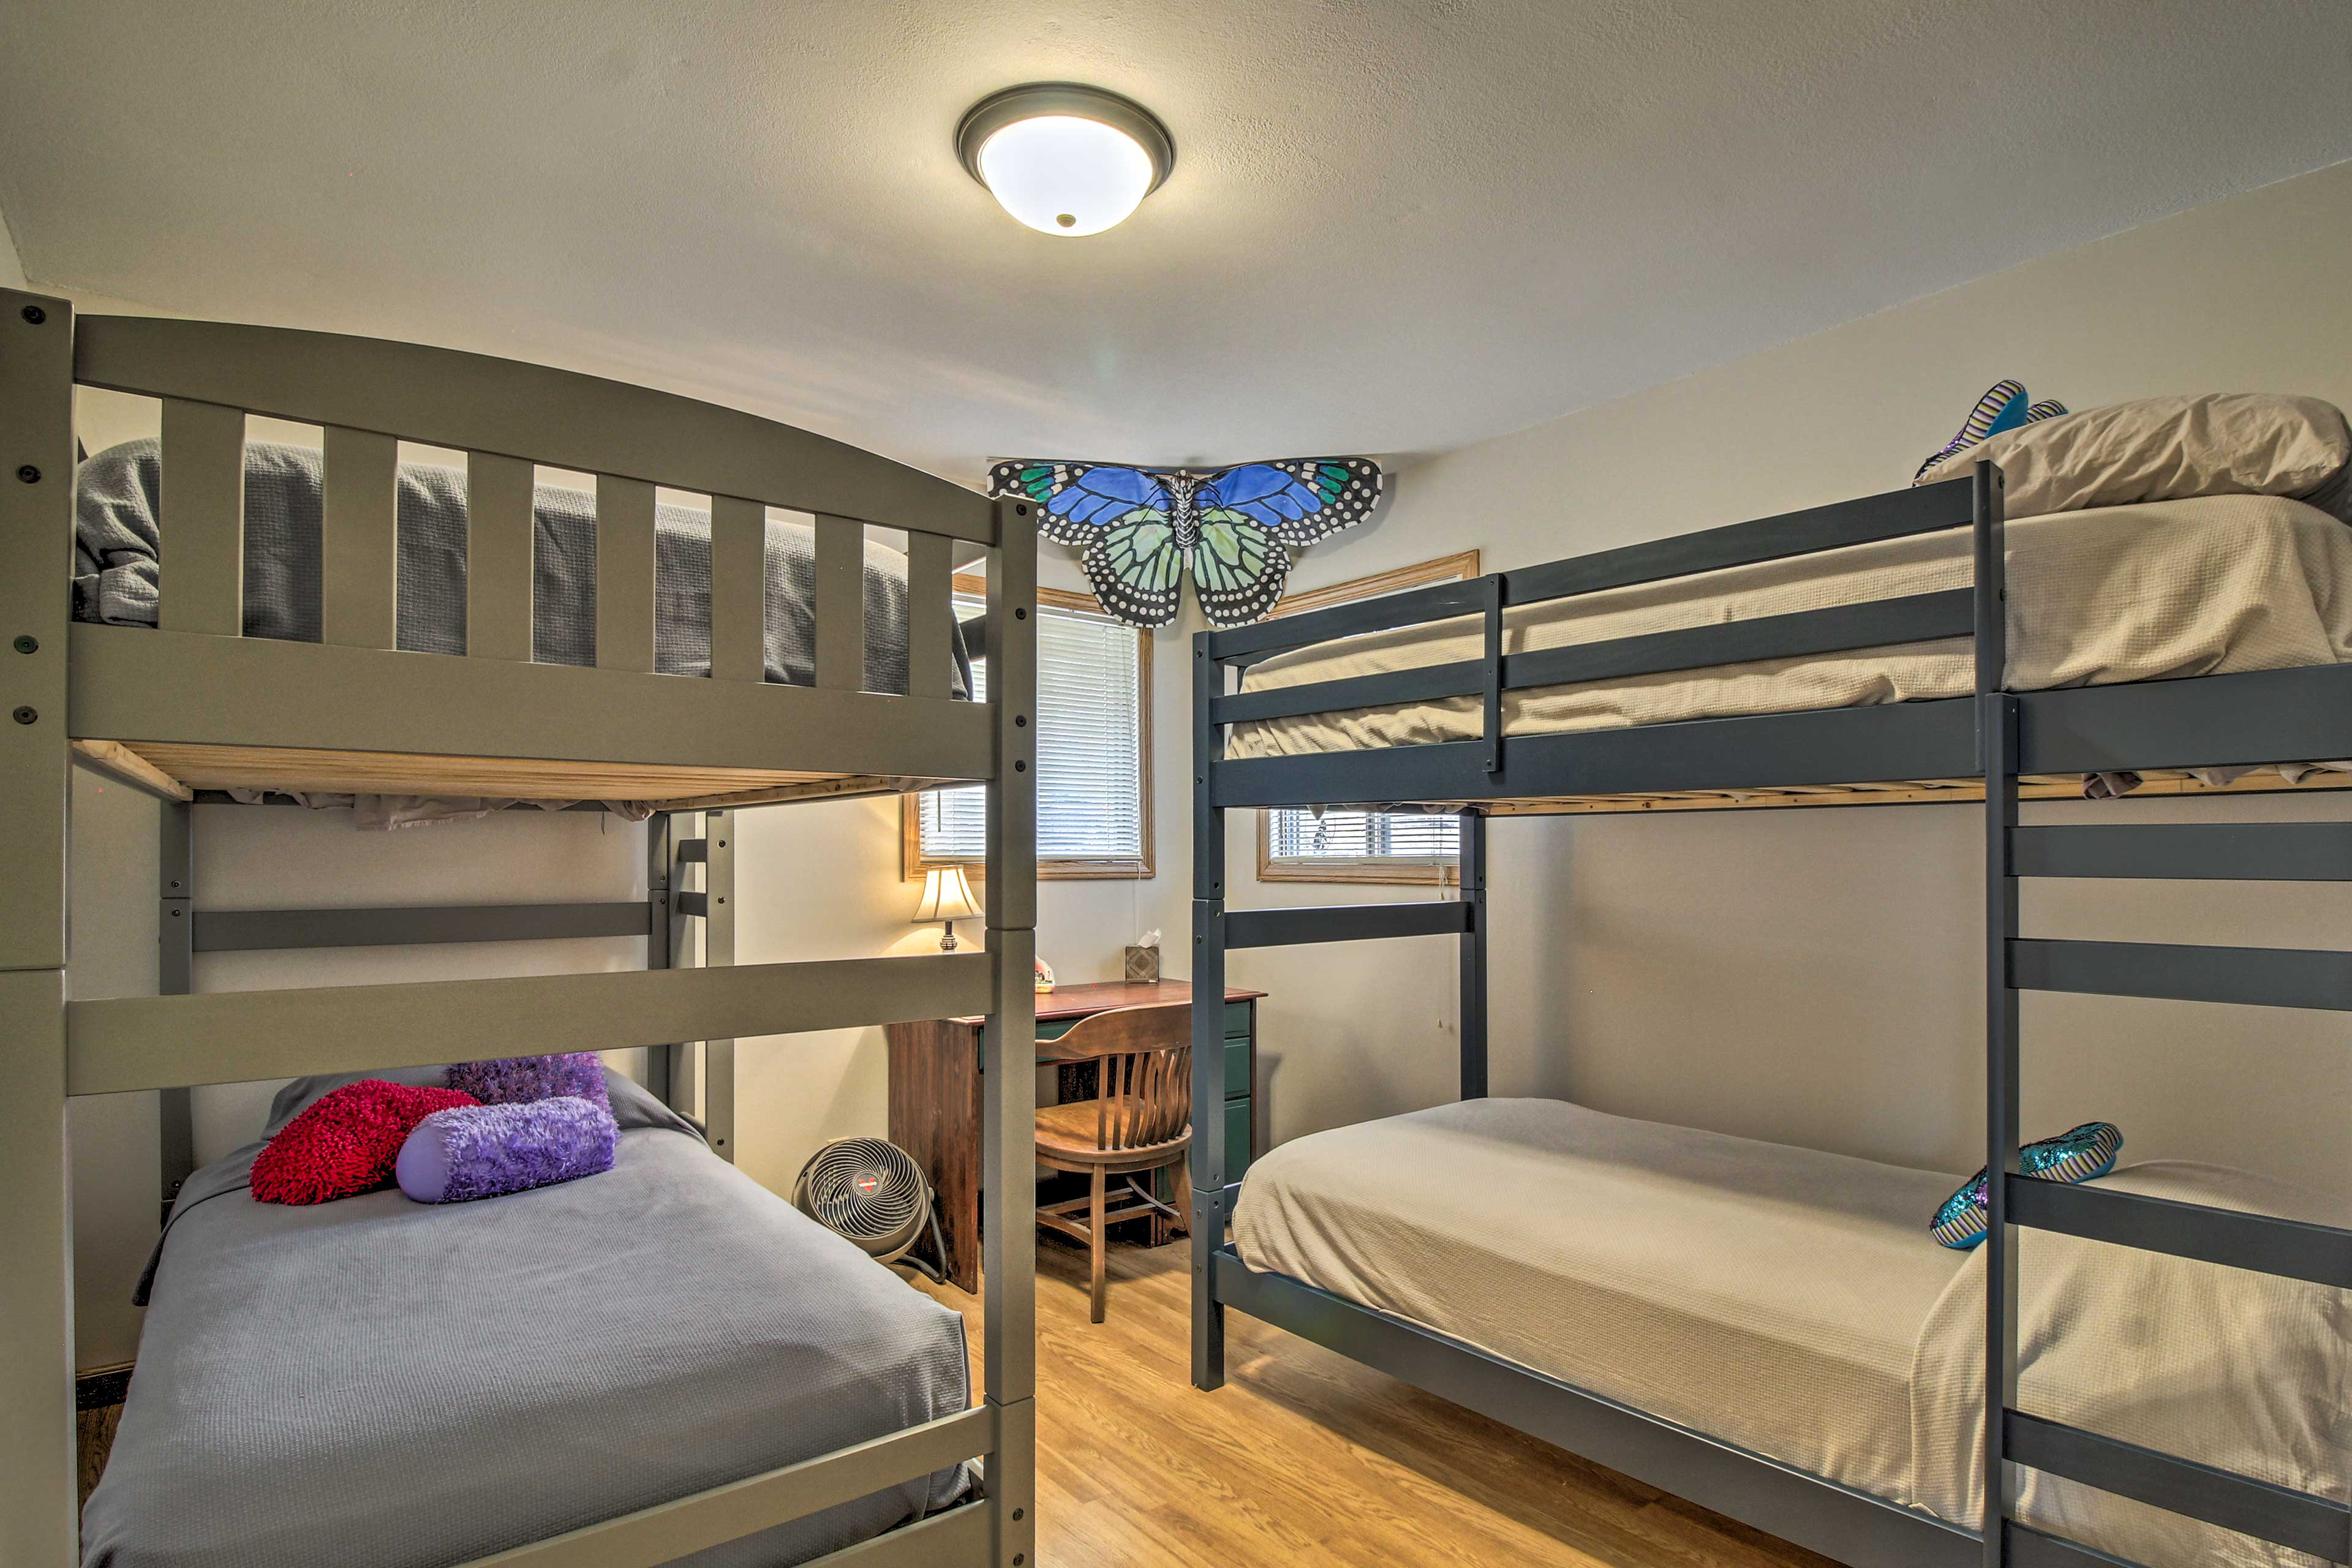 This room is perfect for siblings or friends sharing a space.